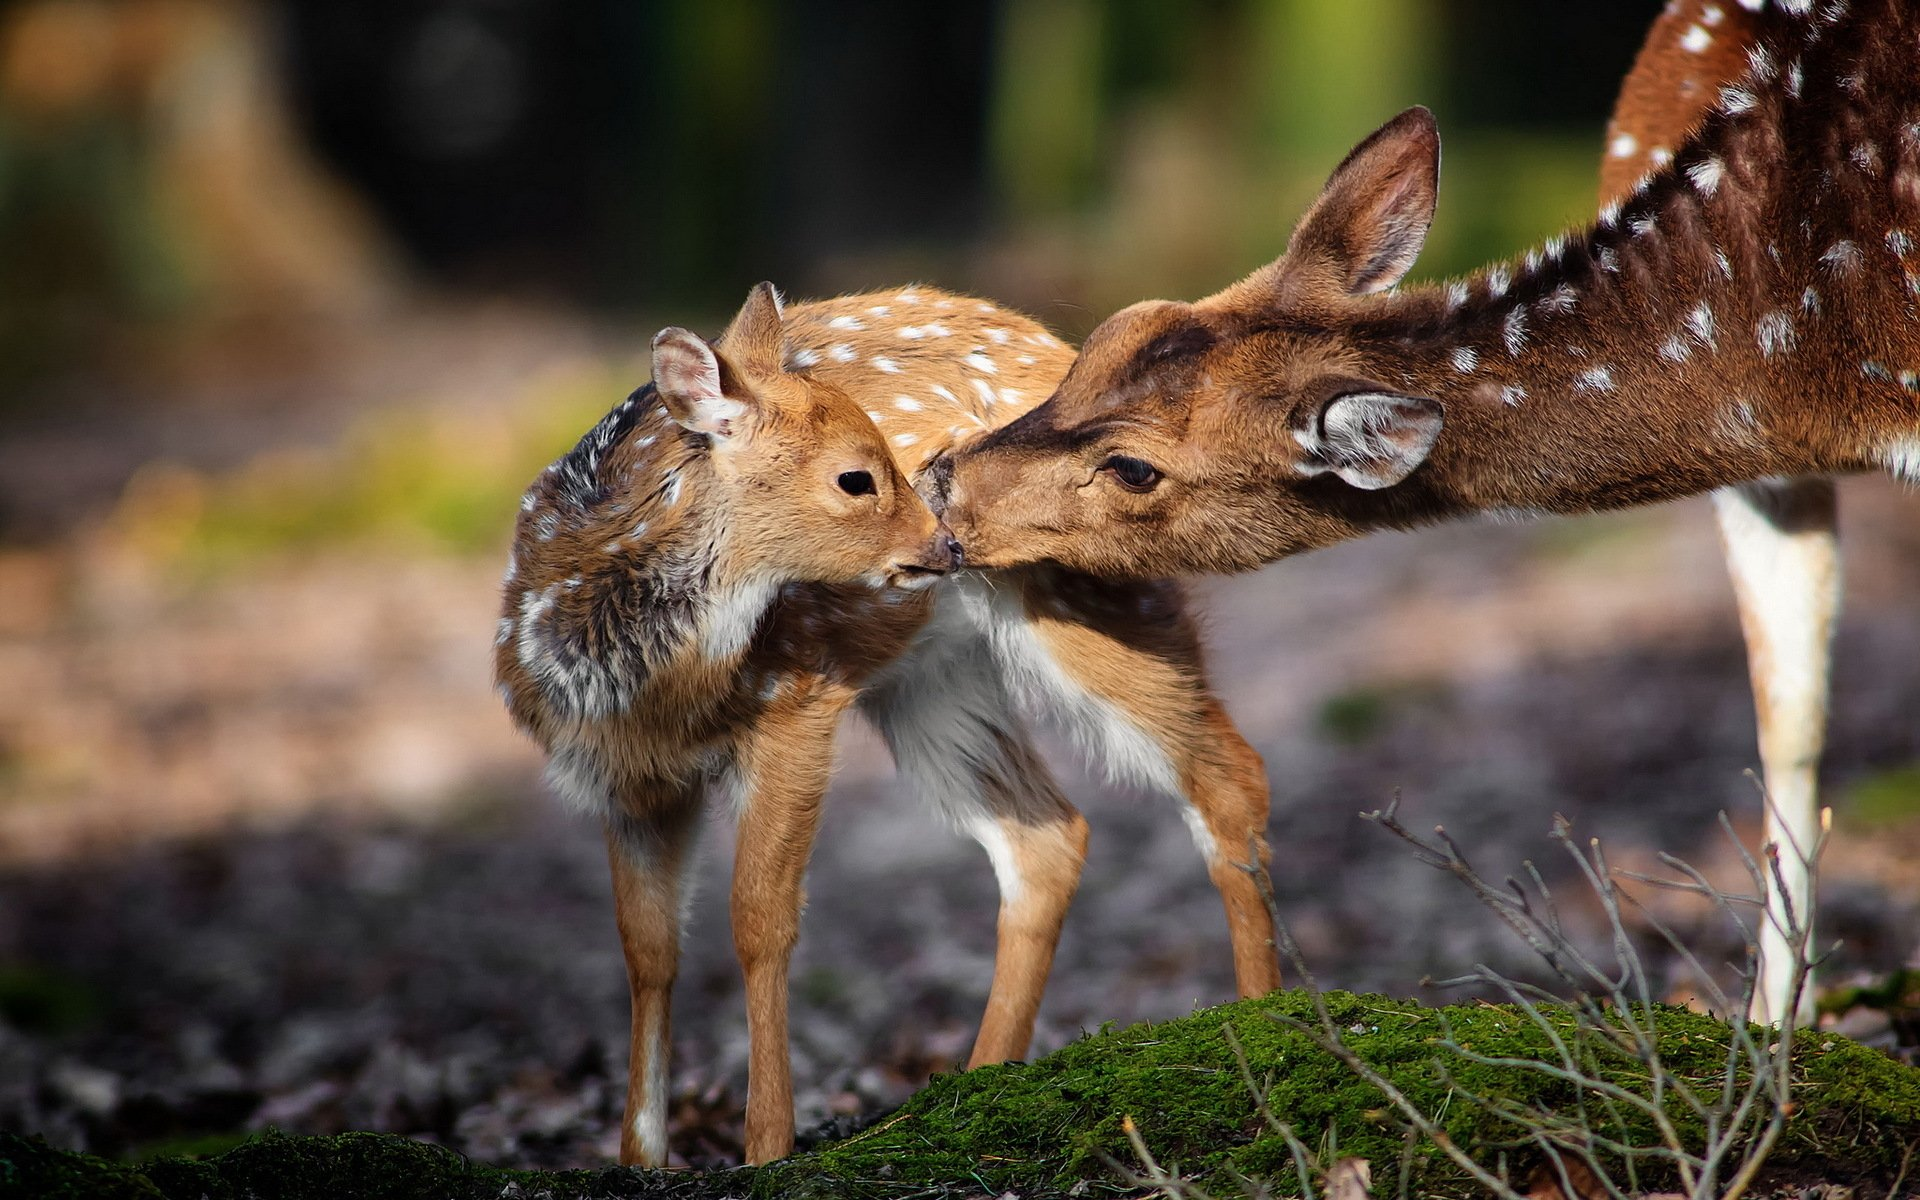 Animals 68 Hd Wallpapers Hd Wallpapers: Deer Full HD Wallpaper And Background Image